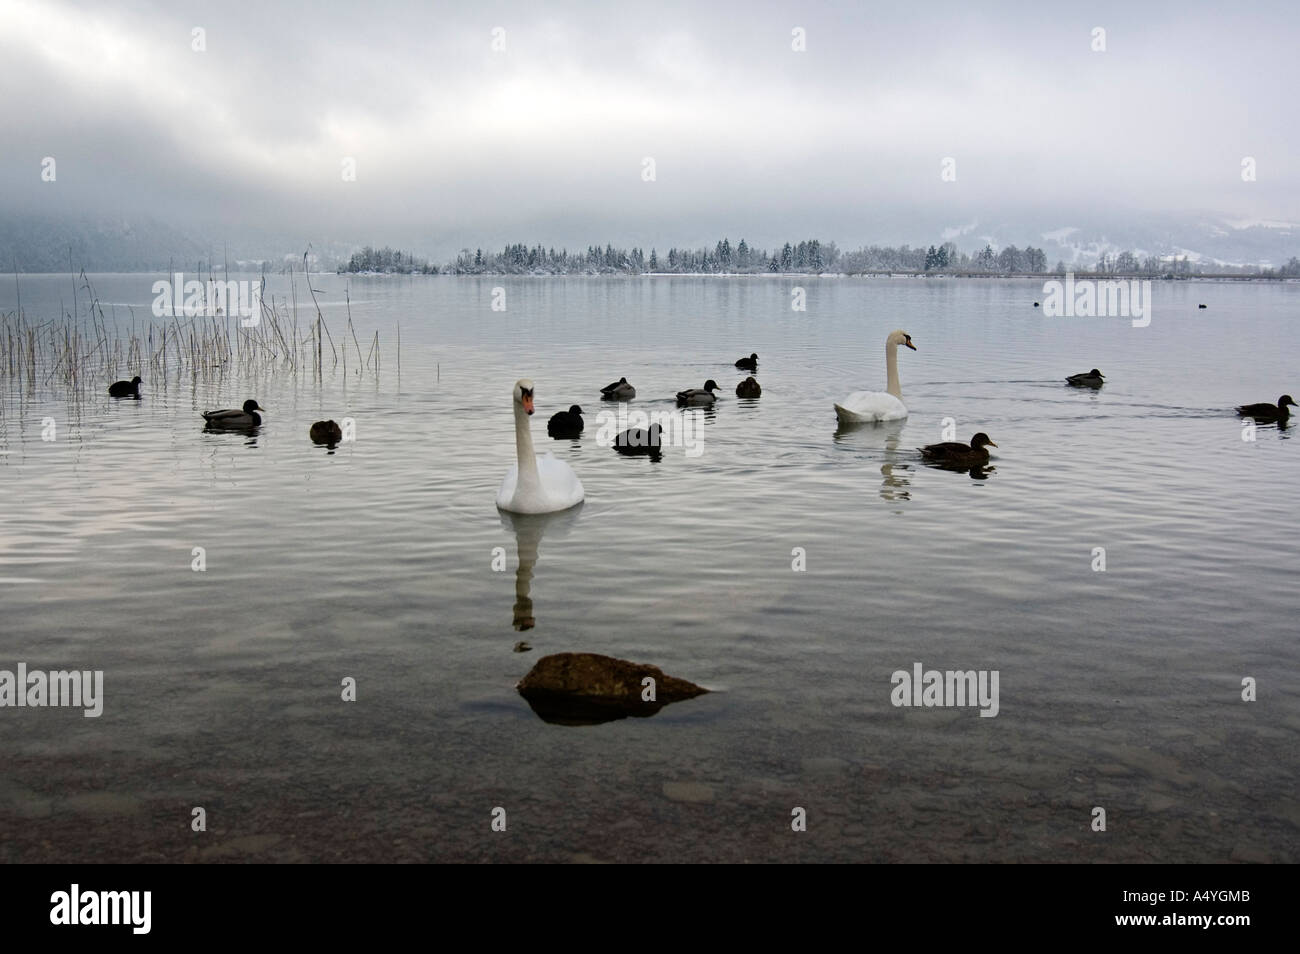 Waterbirds on the Kochelsee in winter, Bavaria, Germany - Stock Image